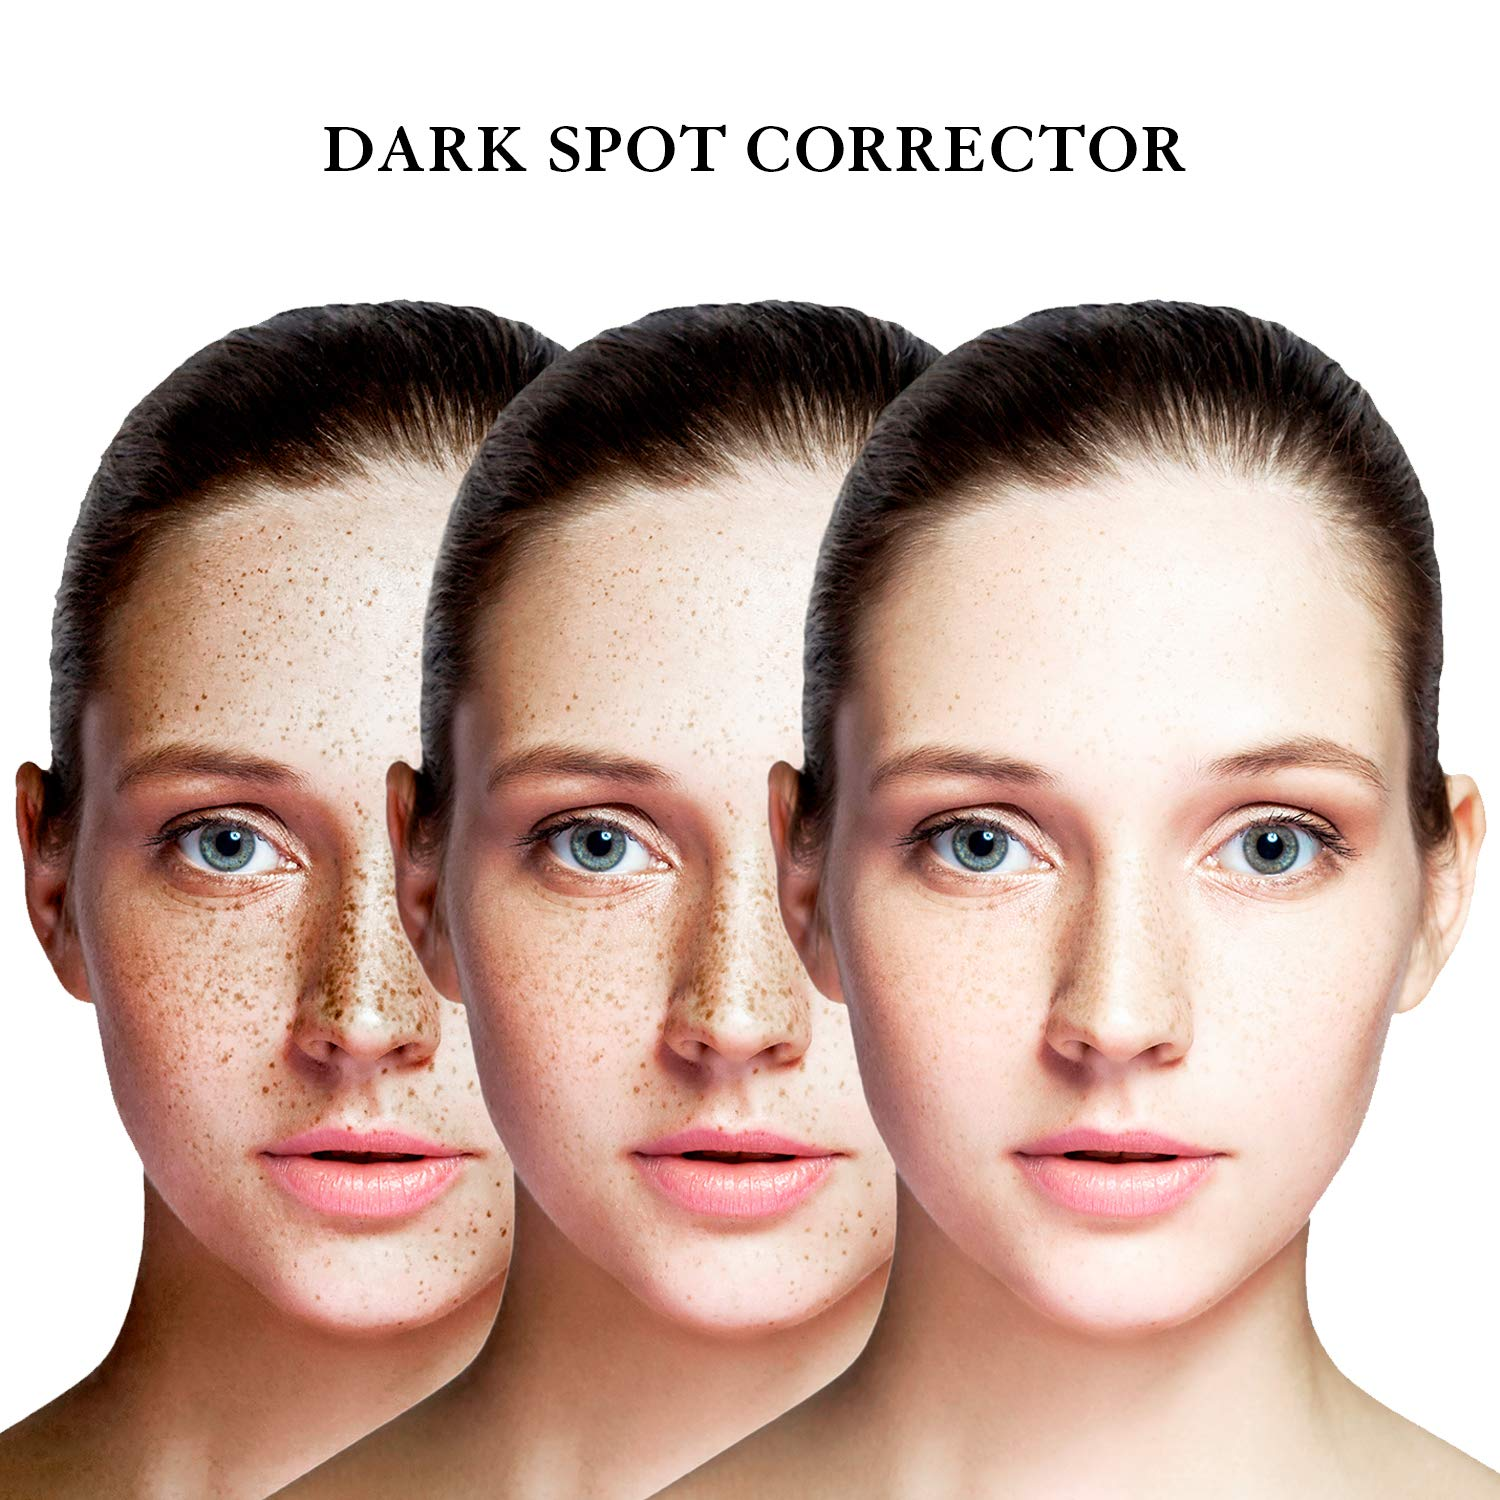 EnaSkin Dark Spot Corrector Remover for Face and BodyFormulated with Advanced Ingredient